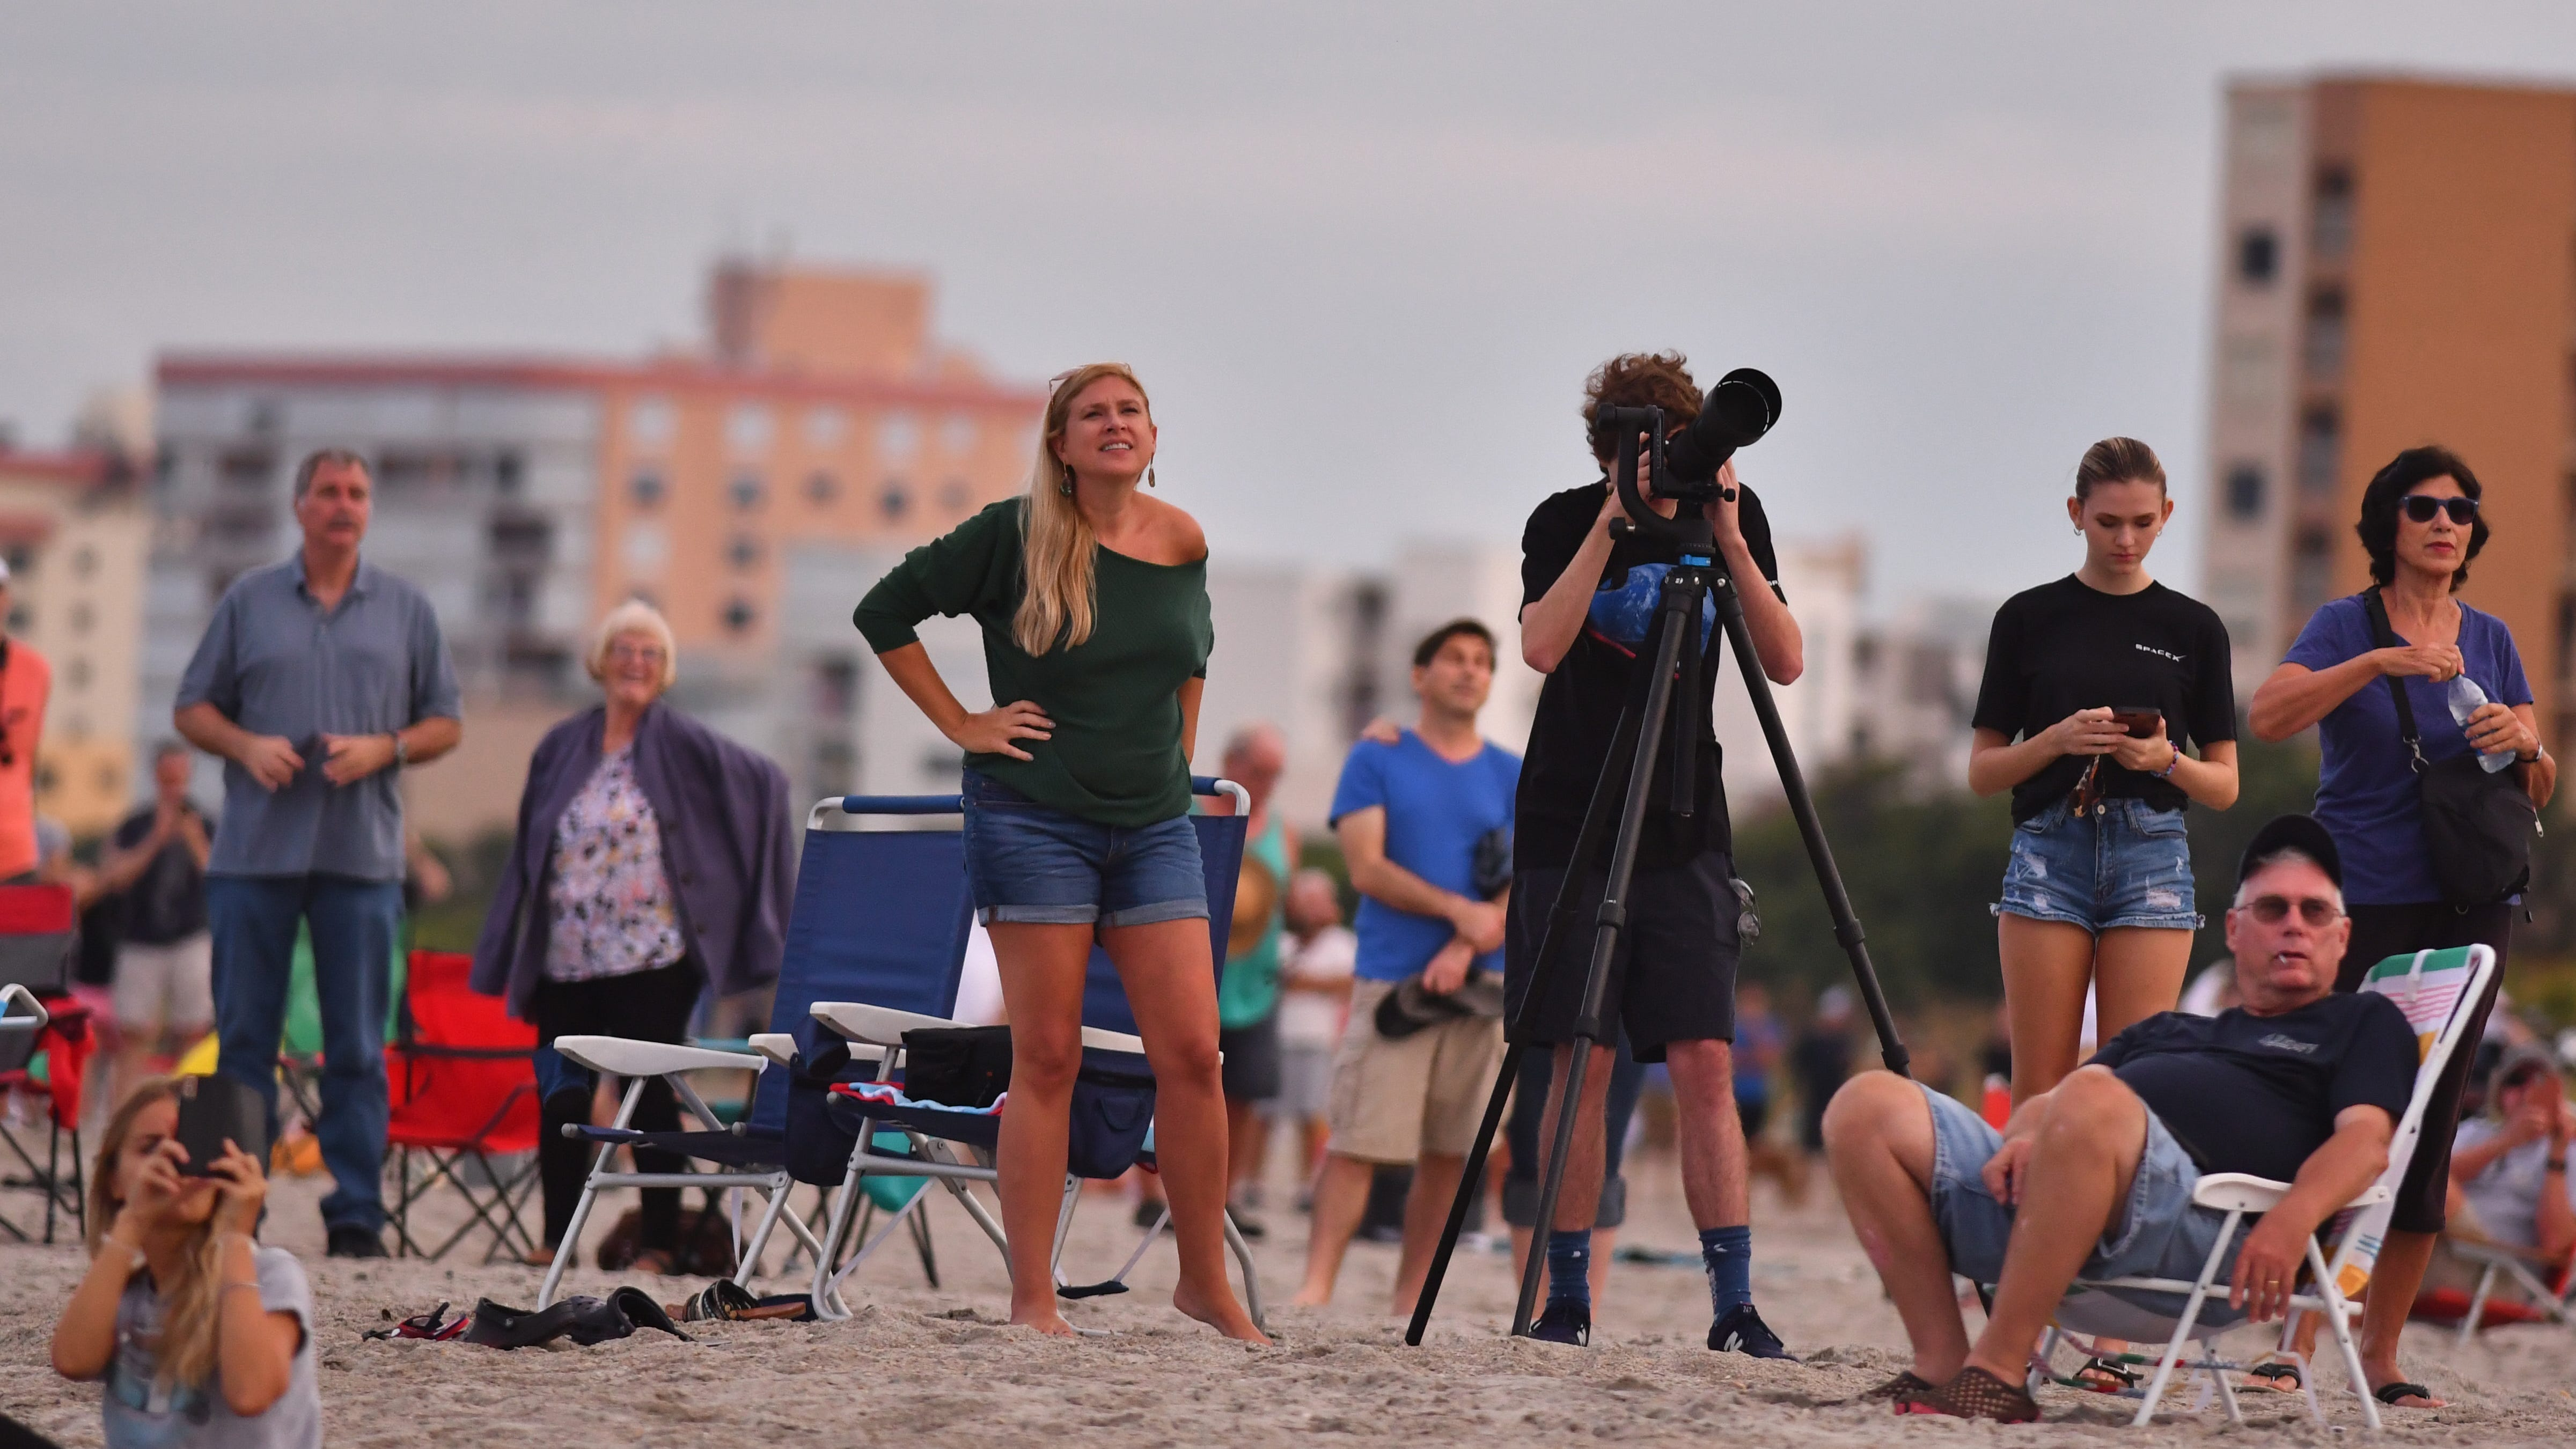 People at Cherie Down Park in Cape Canaveral watch the launch and booster landing of the SpaceX Falcon 9 rocket carrying an Argentinian communications satellite known as SAOCOM-1B. The rocket launched from Launch  Complex 40 at Cape Canaveral Air Force Station at 7:18 p.m. with booster landing about eight minutes later.